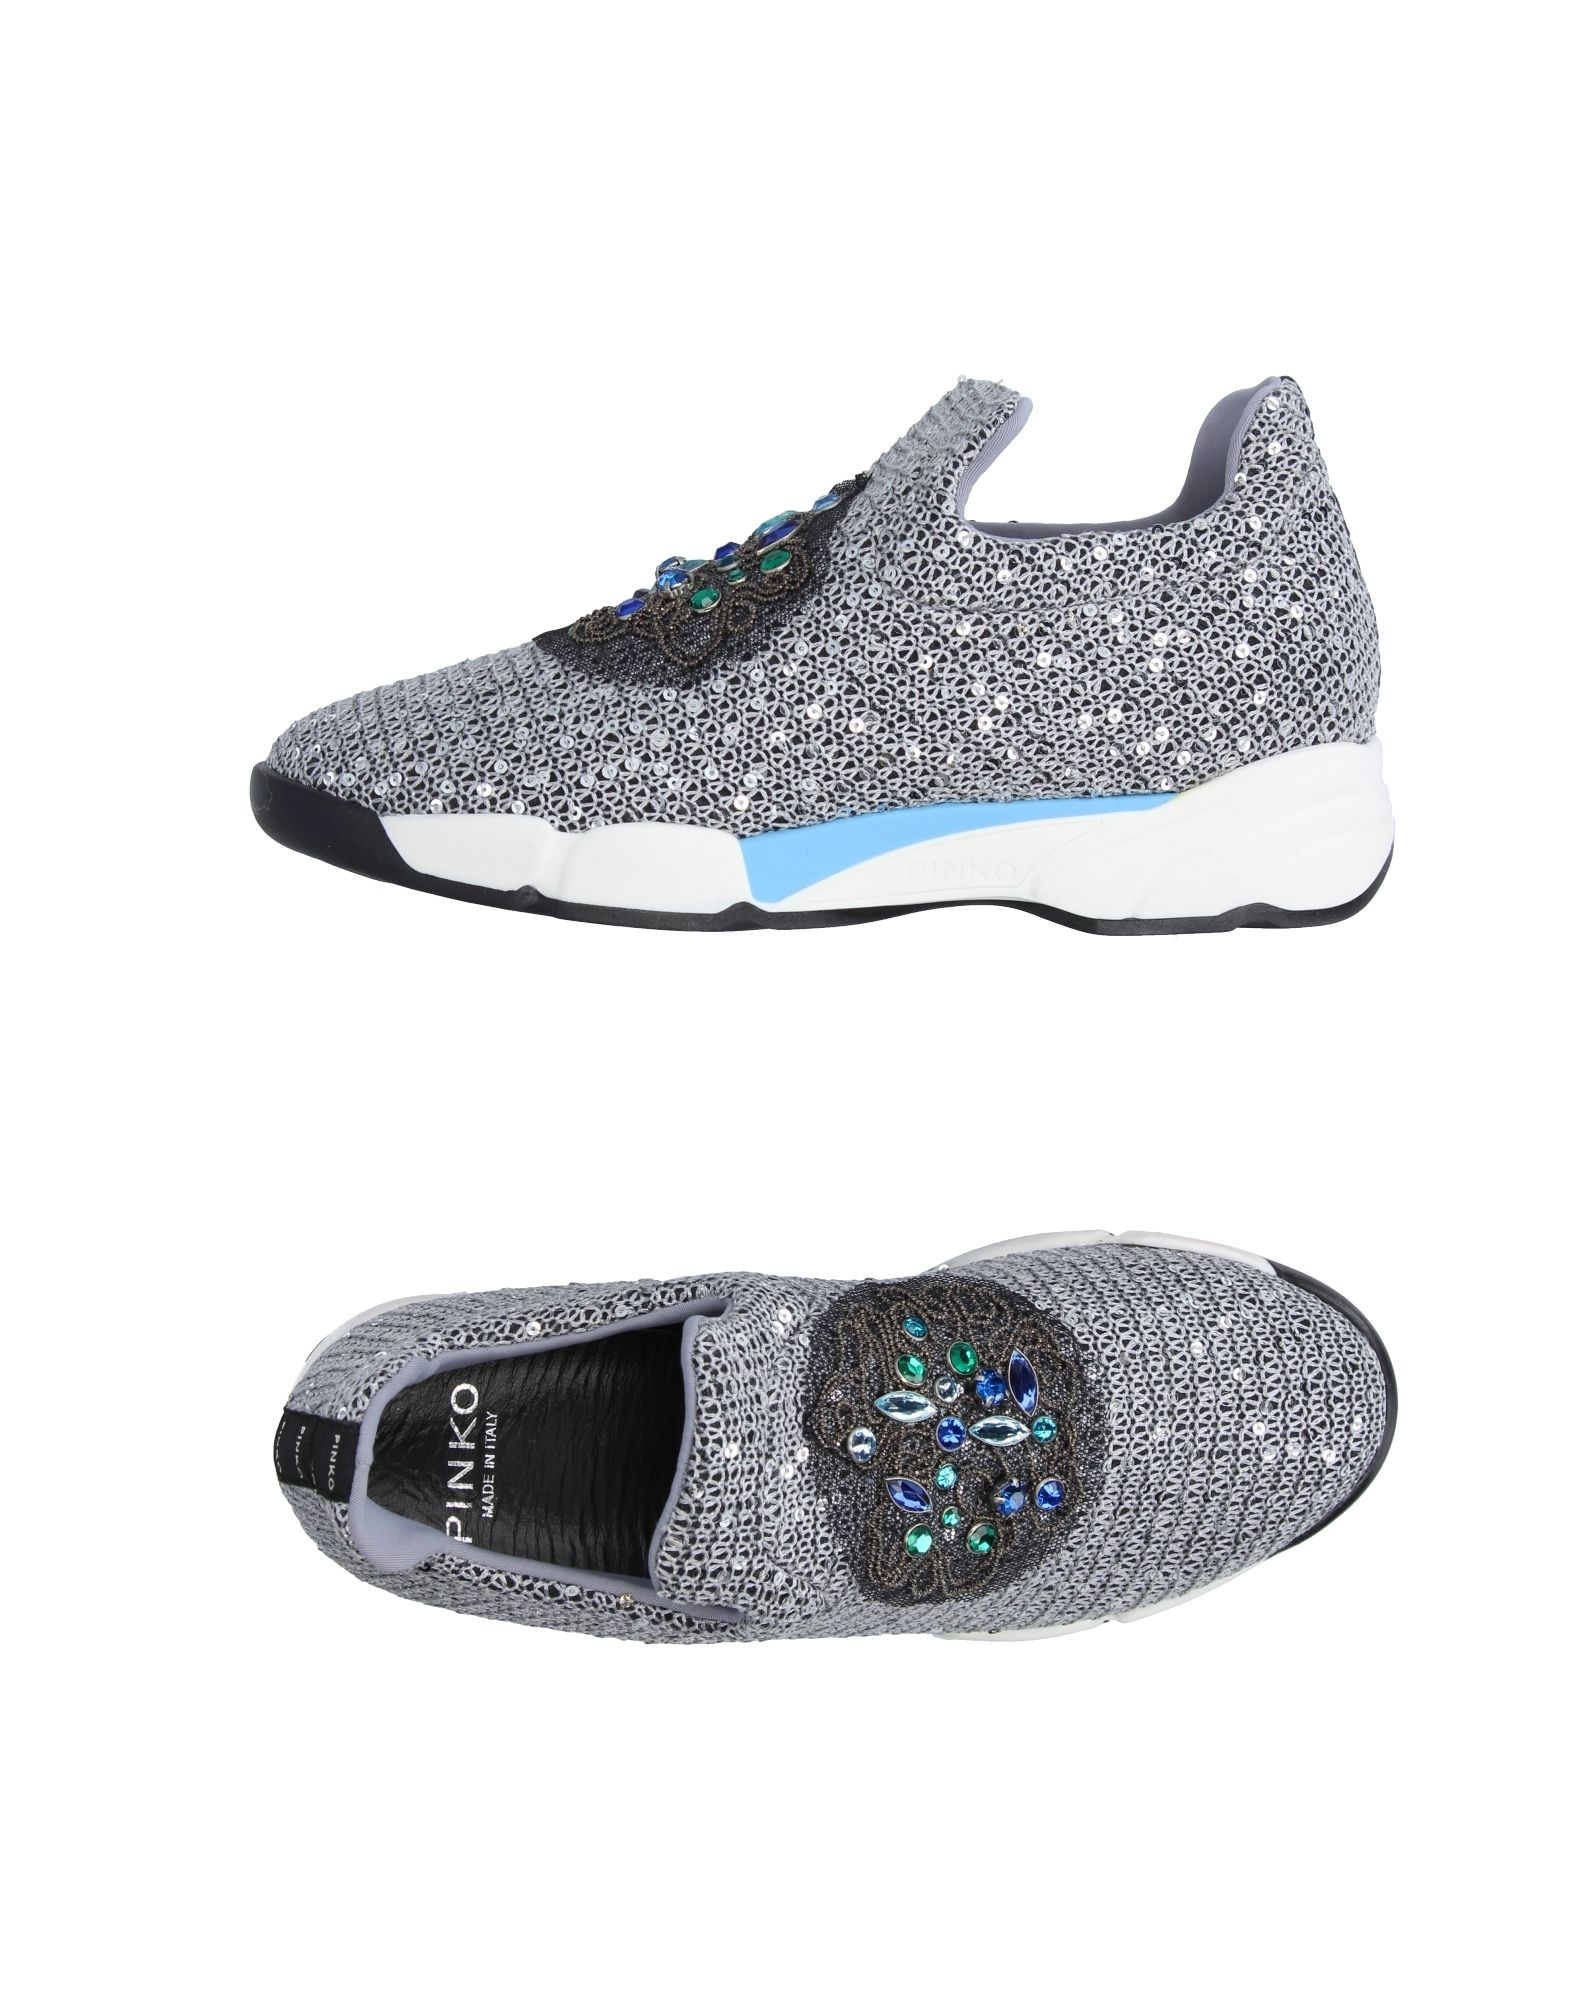 Baskets Pinko Femme - Baskets Pinko Gris clair Chaussures casual sauvages